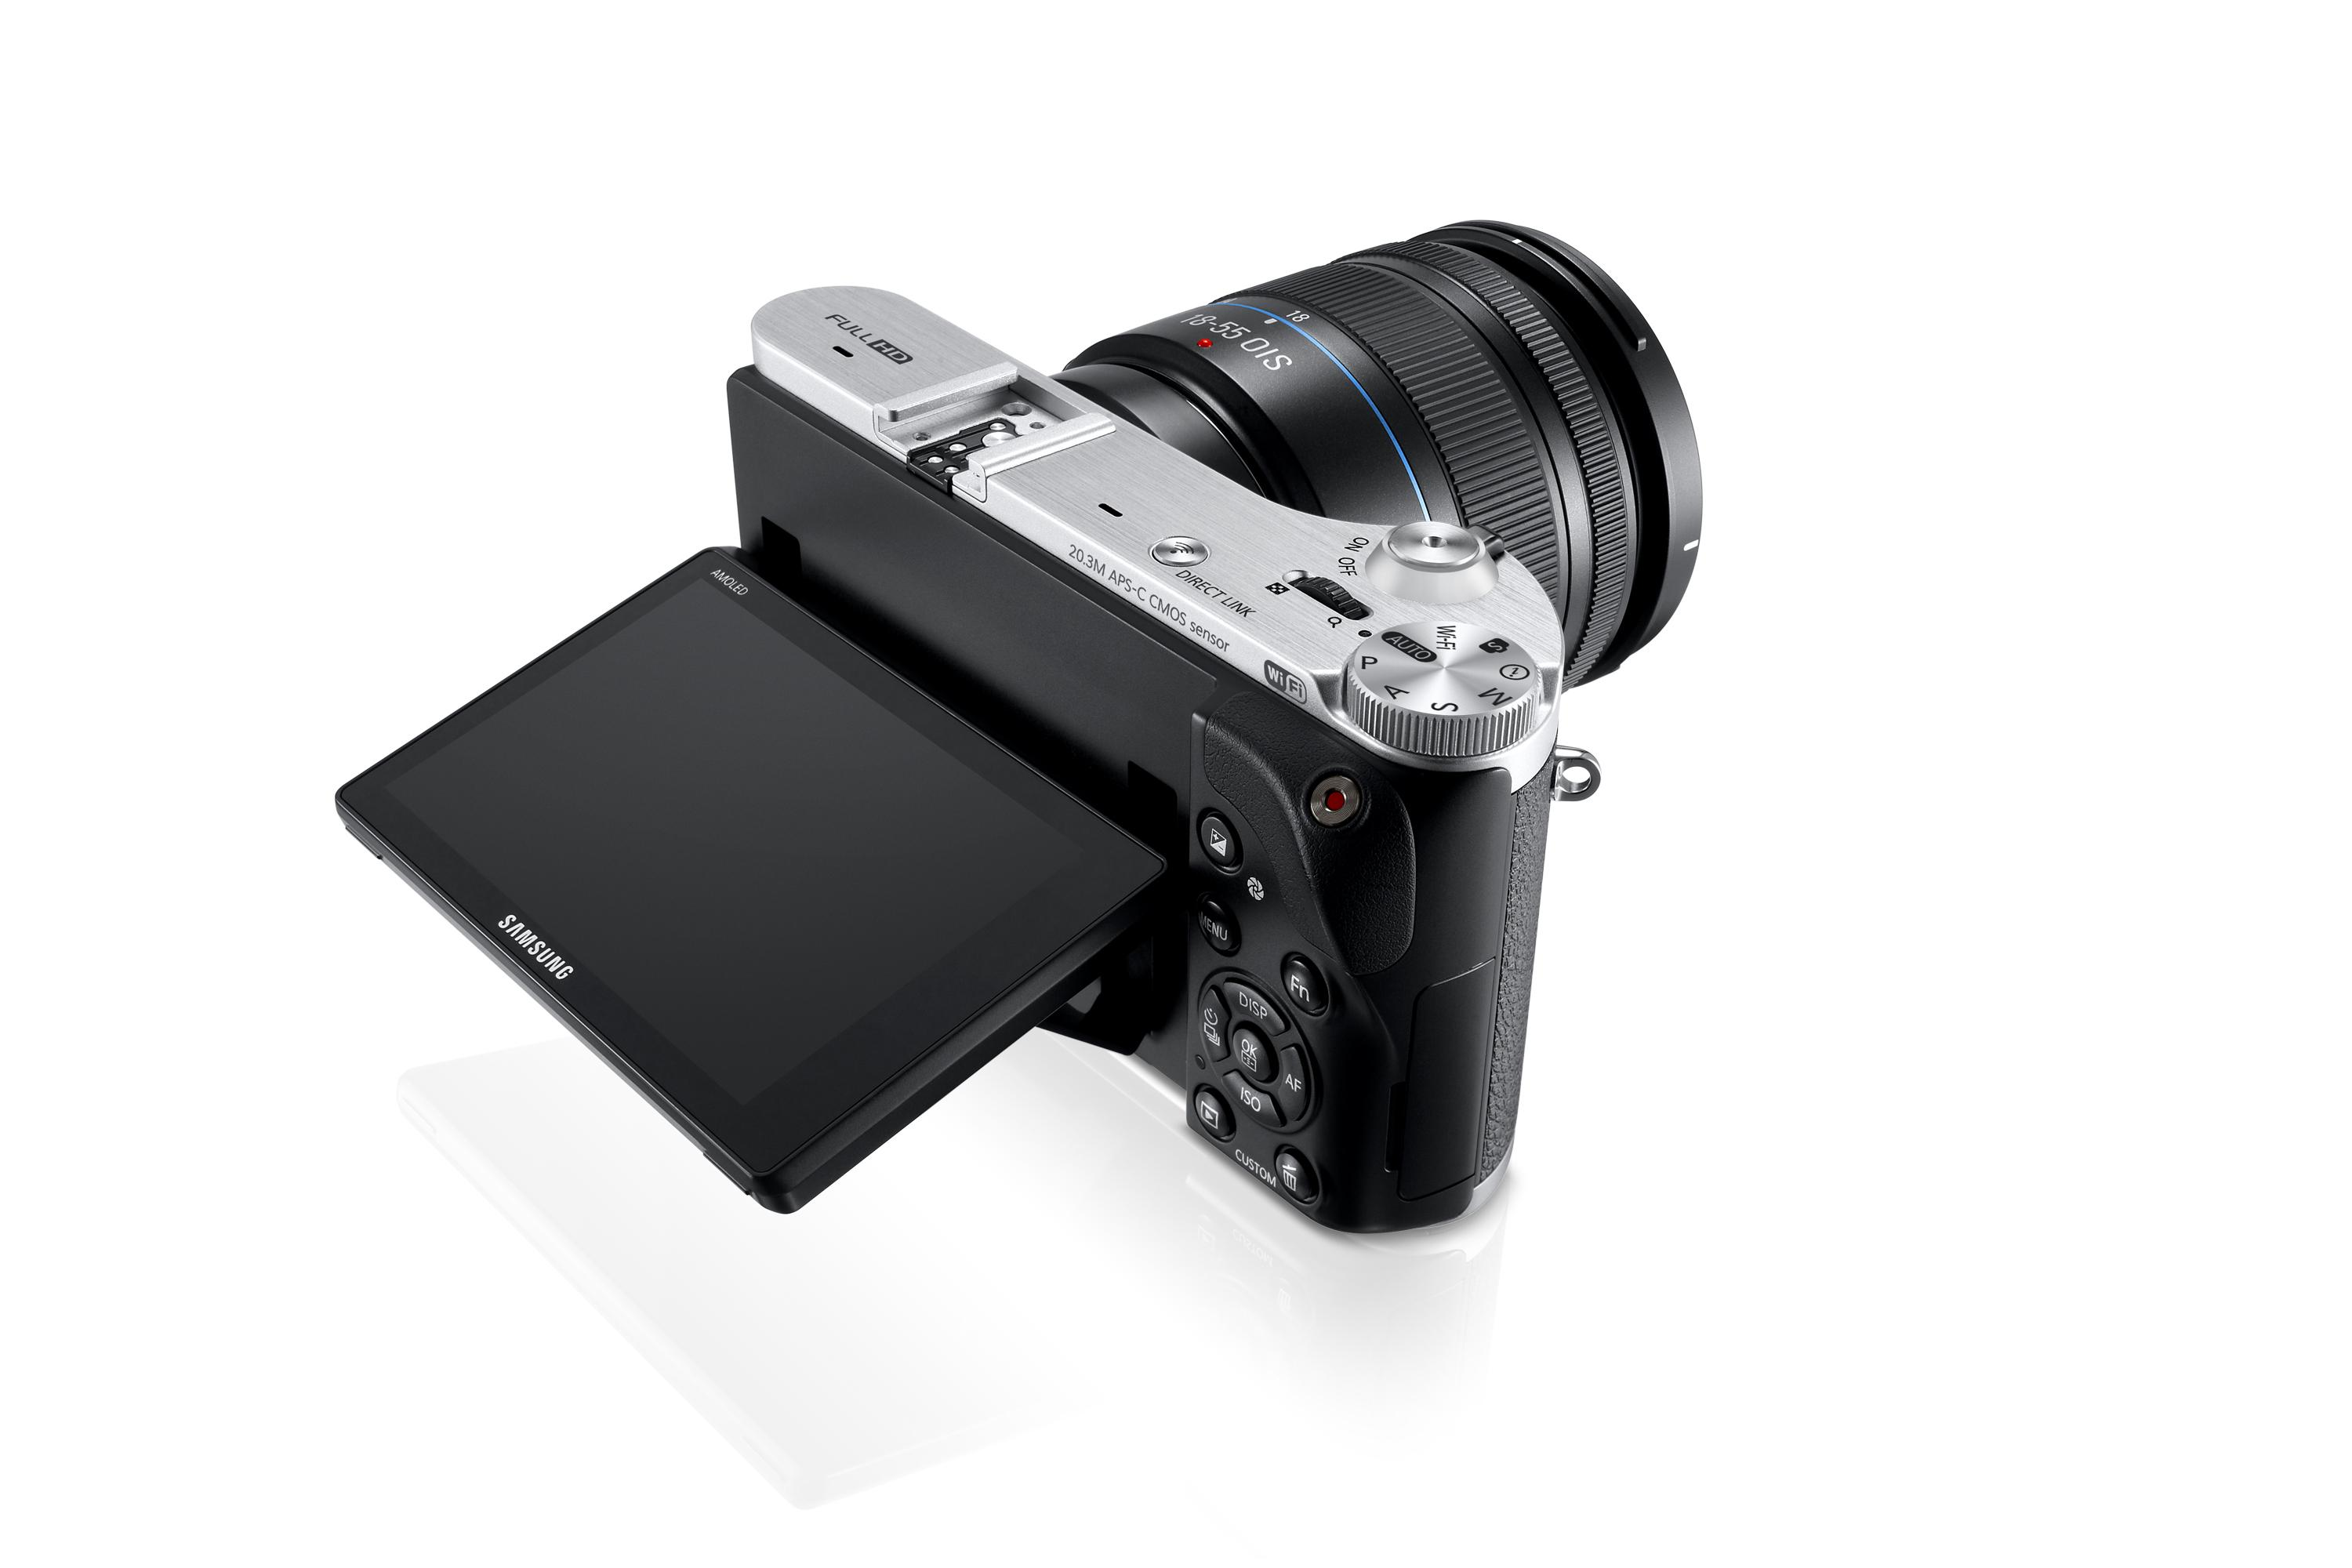 Samsung NX300 User Manual